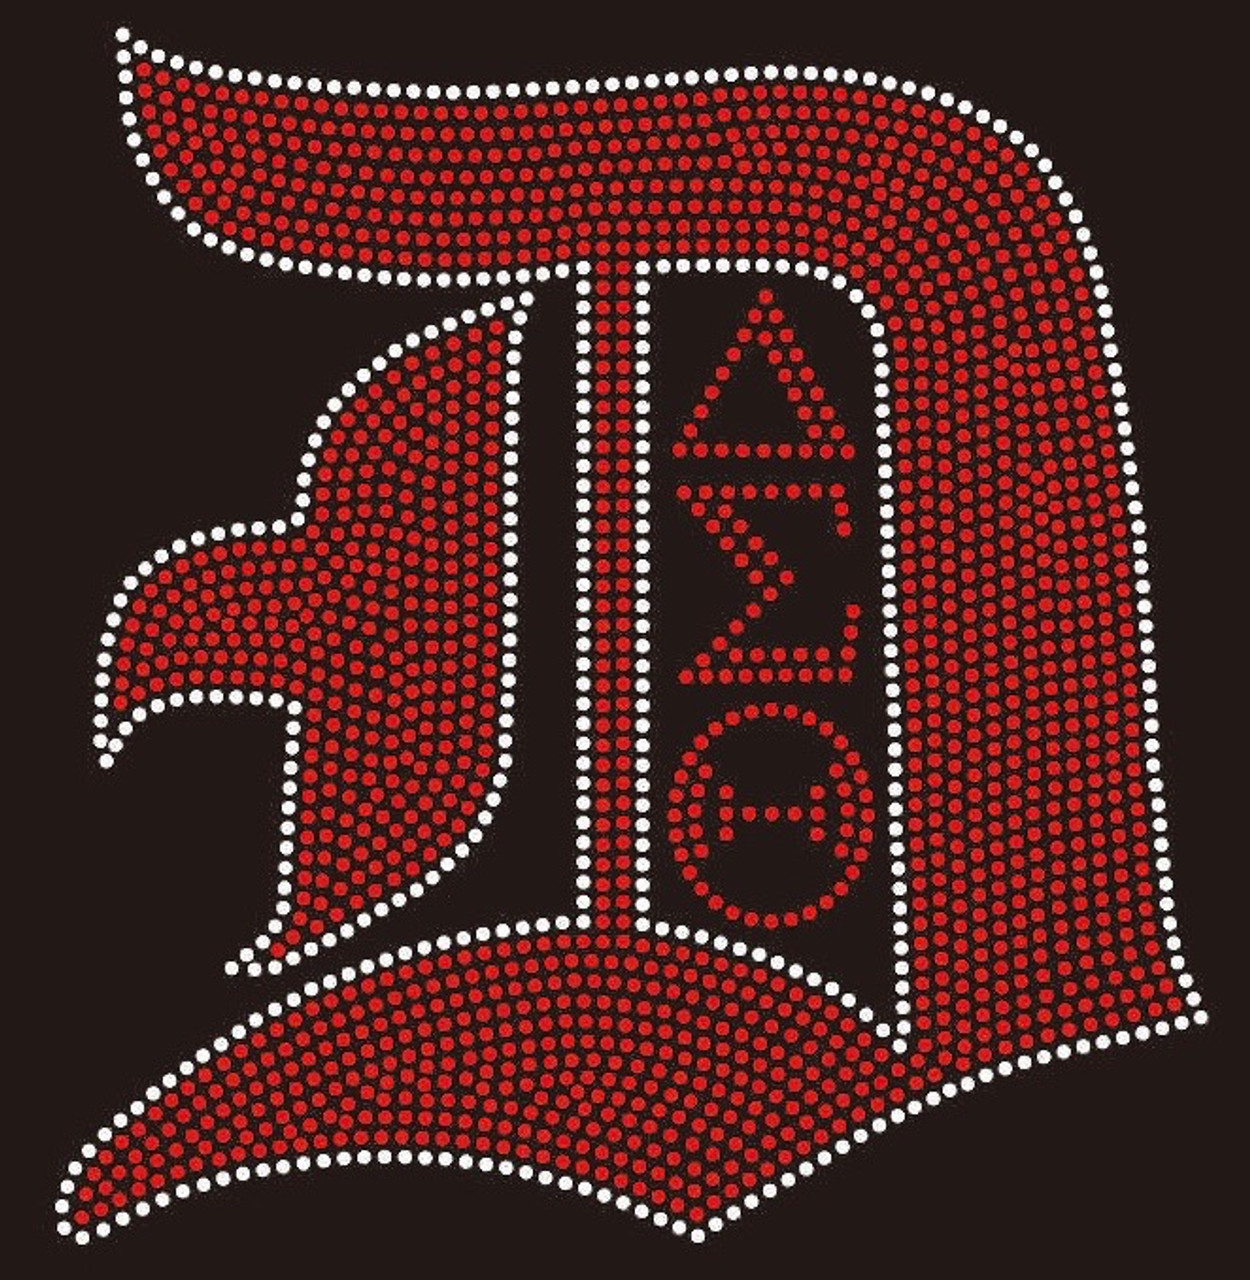 Capital D With Dst Red With Clear Outline Delta Sigma Theta Rhinestone Transfer Texas Rhinestone